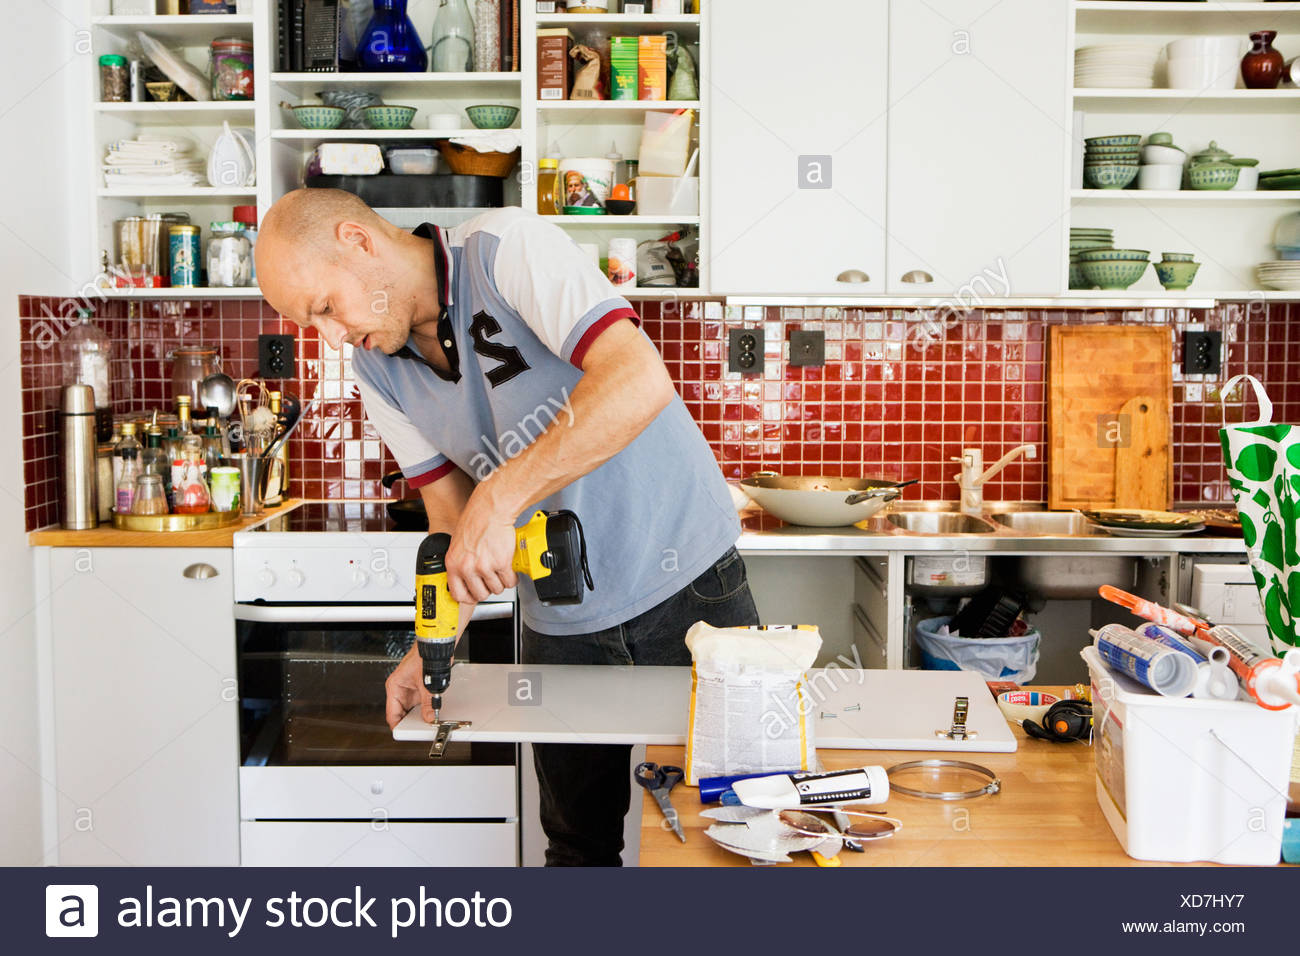 Mid Adult Man Using Drill And Repairing Furniture